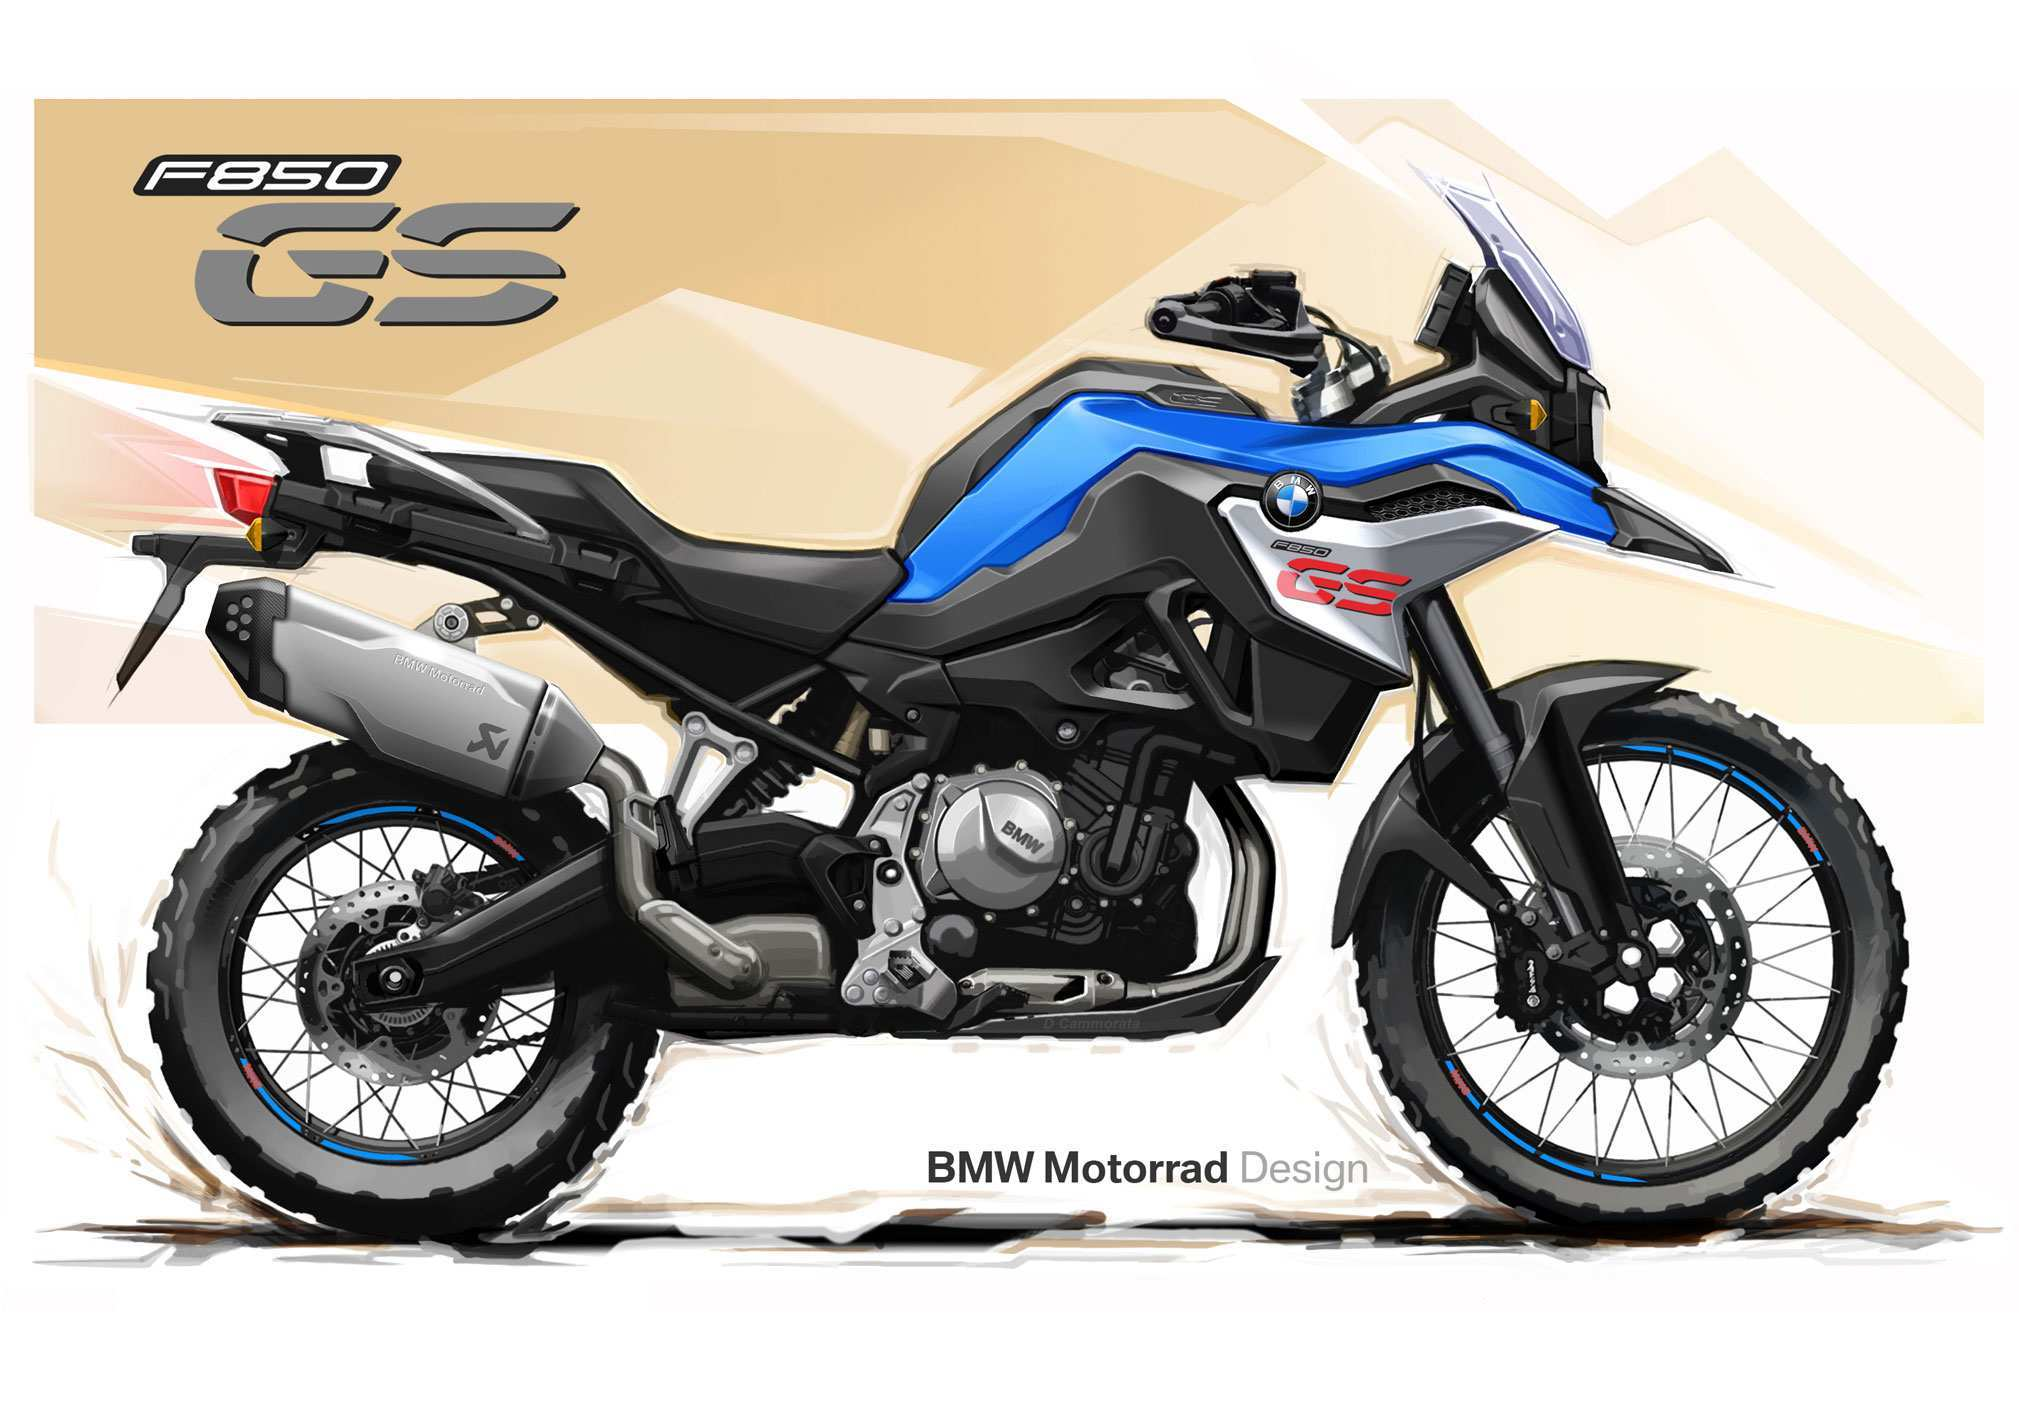 41 The Bmw F850Gs Adventure 2019 Engine Release Date for Bmw F850Gs Adventure 2019 Engine